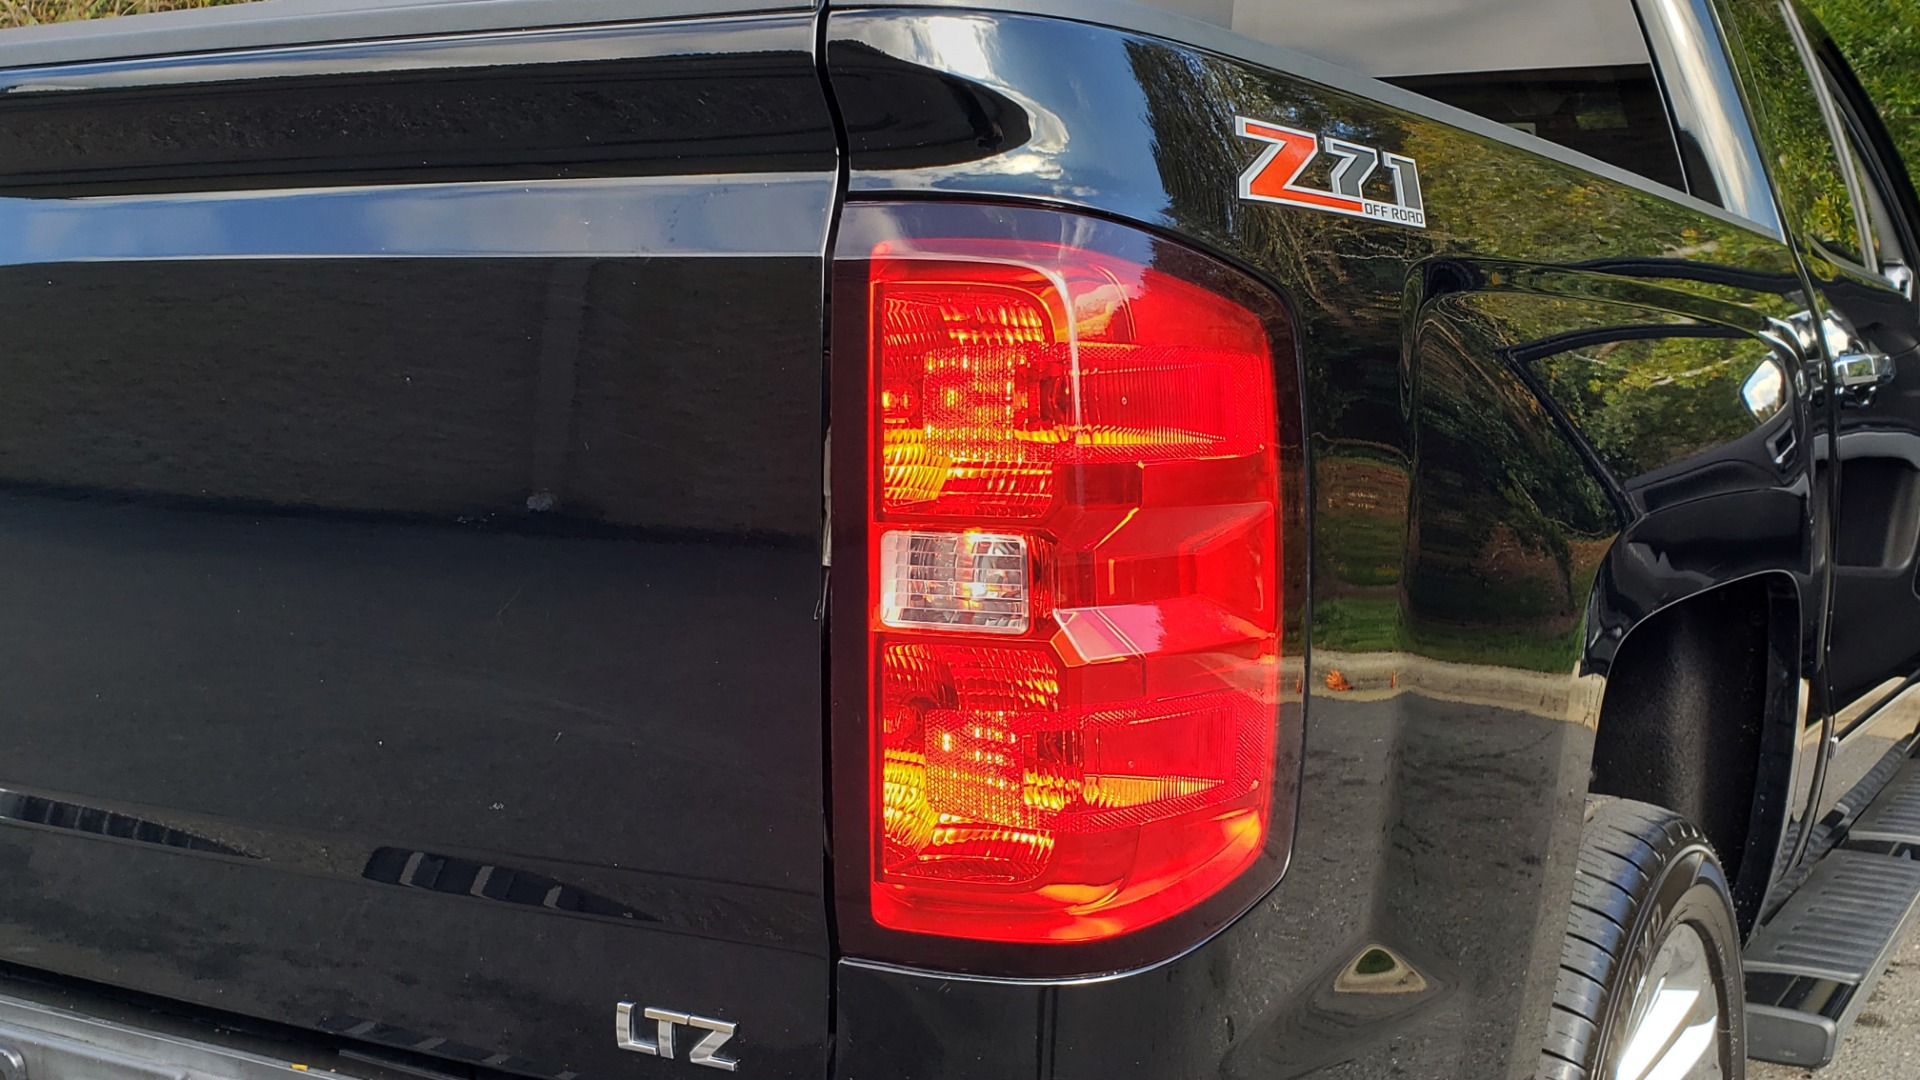 Used 2014 Chevrolet SILVERADO 1500 CREWCAB / LTZ PLUS PKG / 4WD / 2LZ / NAV / BOSE / REARVIEW for sale Sold at Formula Imports in Charlotte NC 28227 24